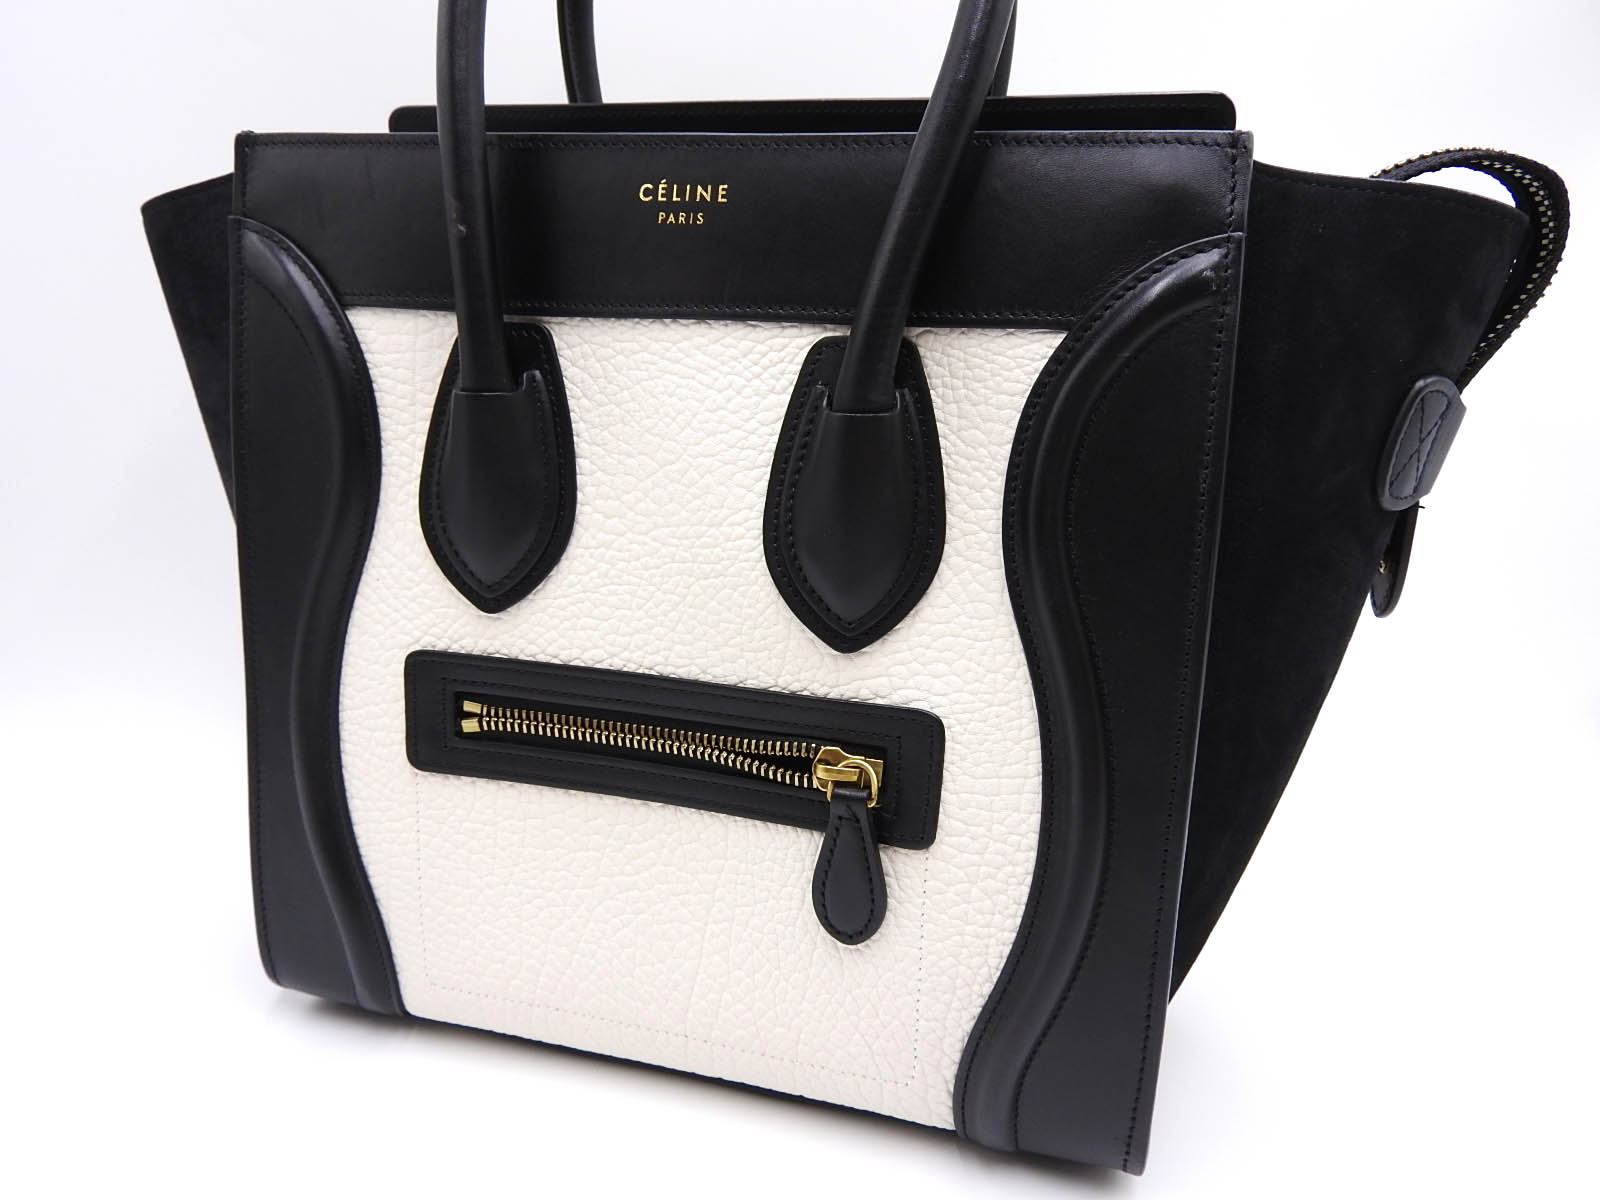 fb11bca428ab7 Auth CELINE Luggage Micro Shopper Tote Hand Bag Calf Suede Leather Black  White 167793 A-9634